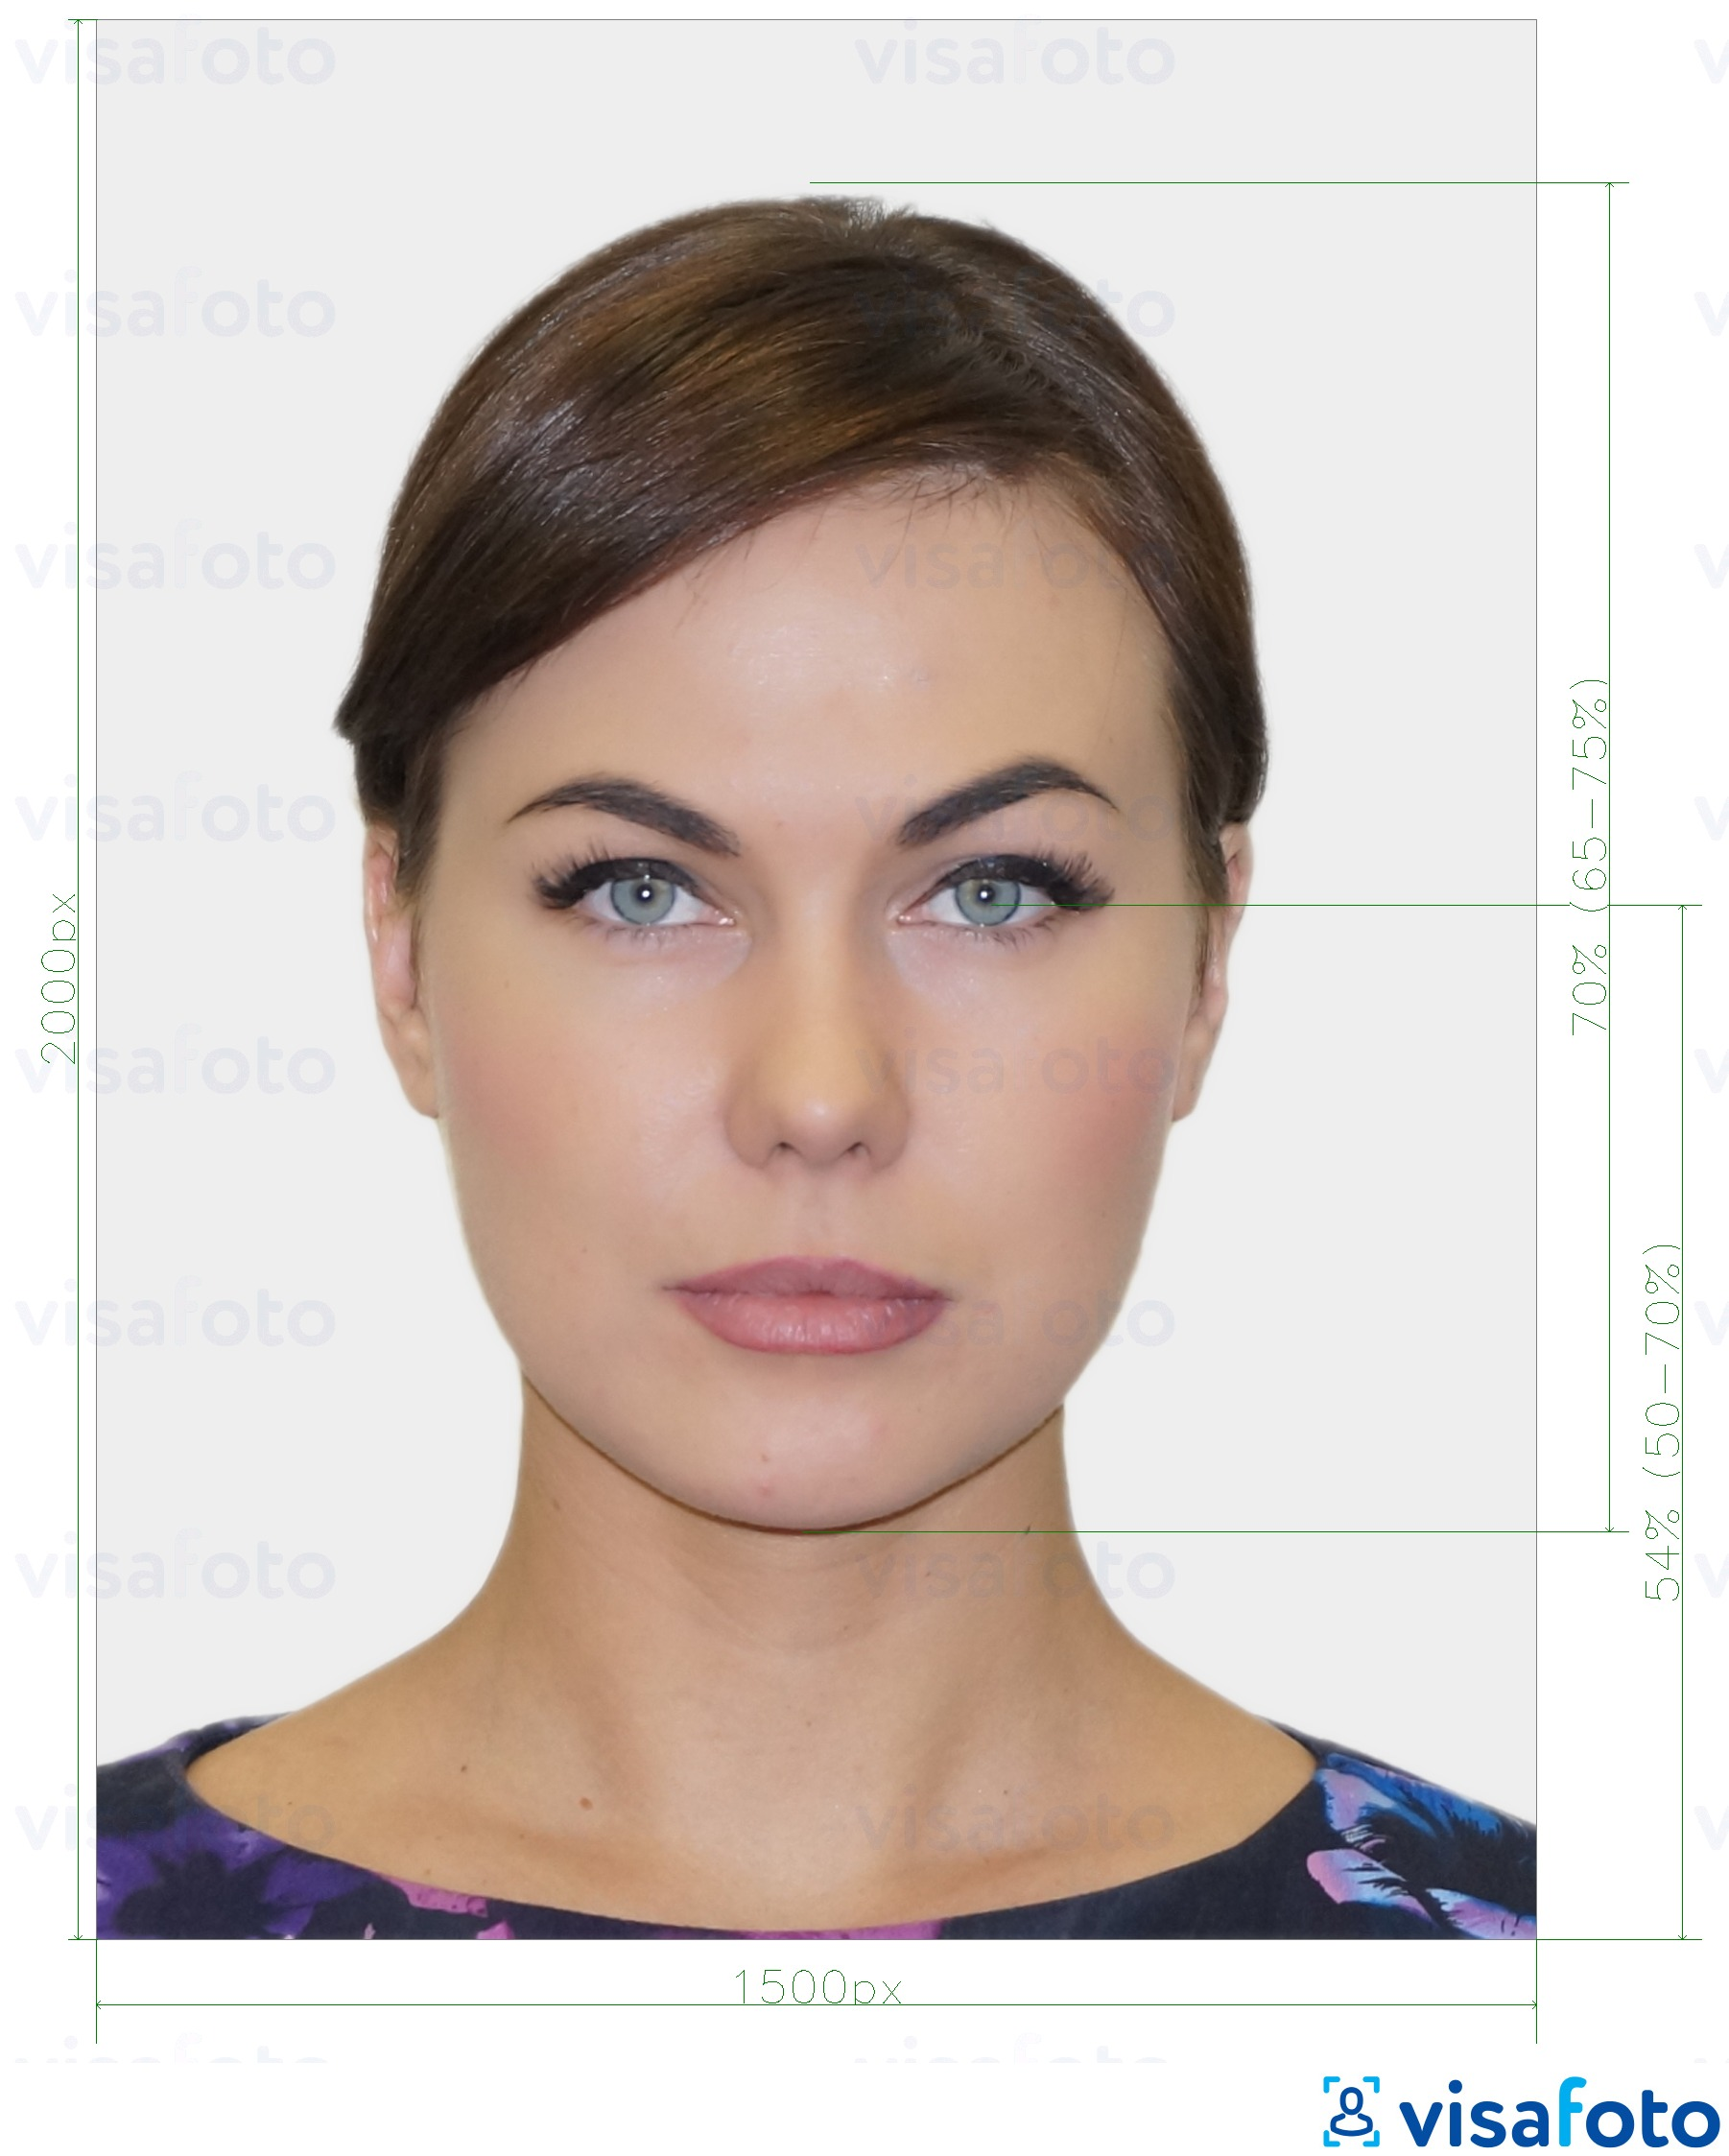 Example of photo for New Zealand Passport Online Application with exact size specification